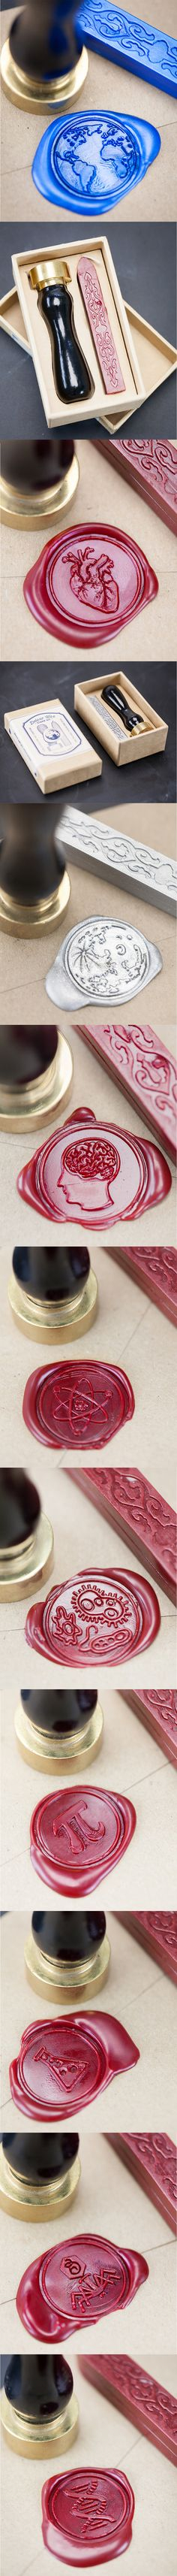 Science wax seals for nerdy wedding invites & awesome correspondence.